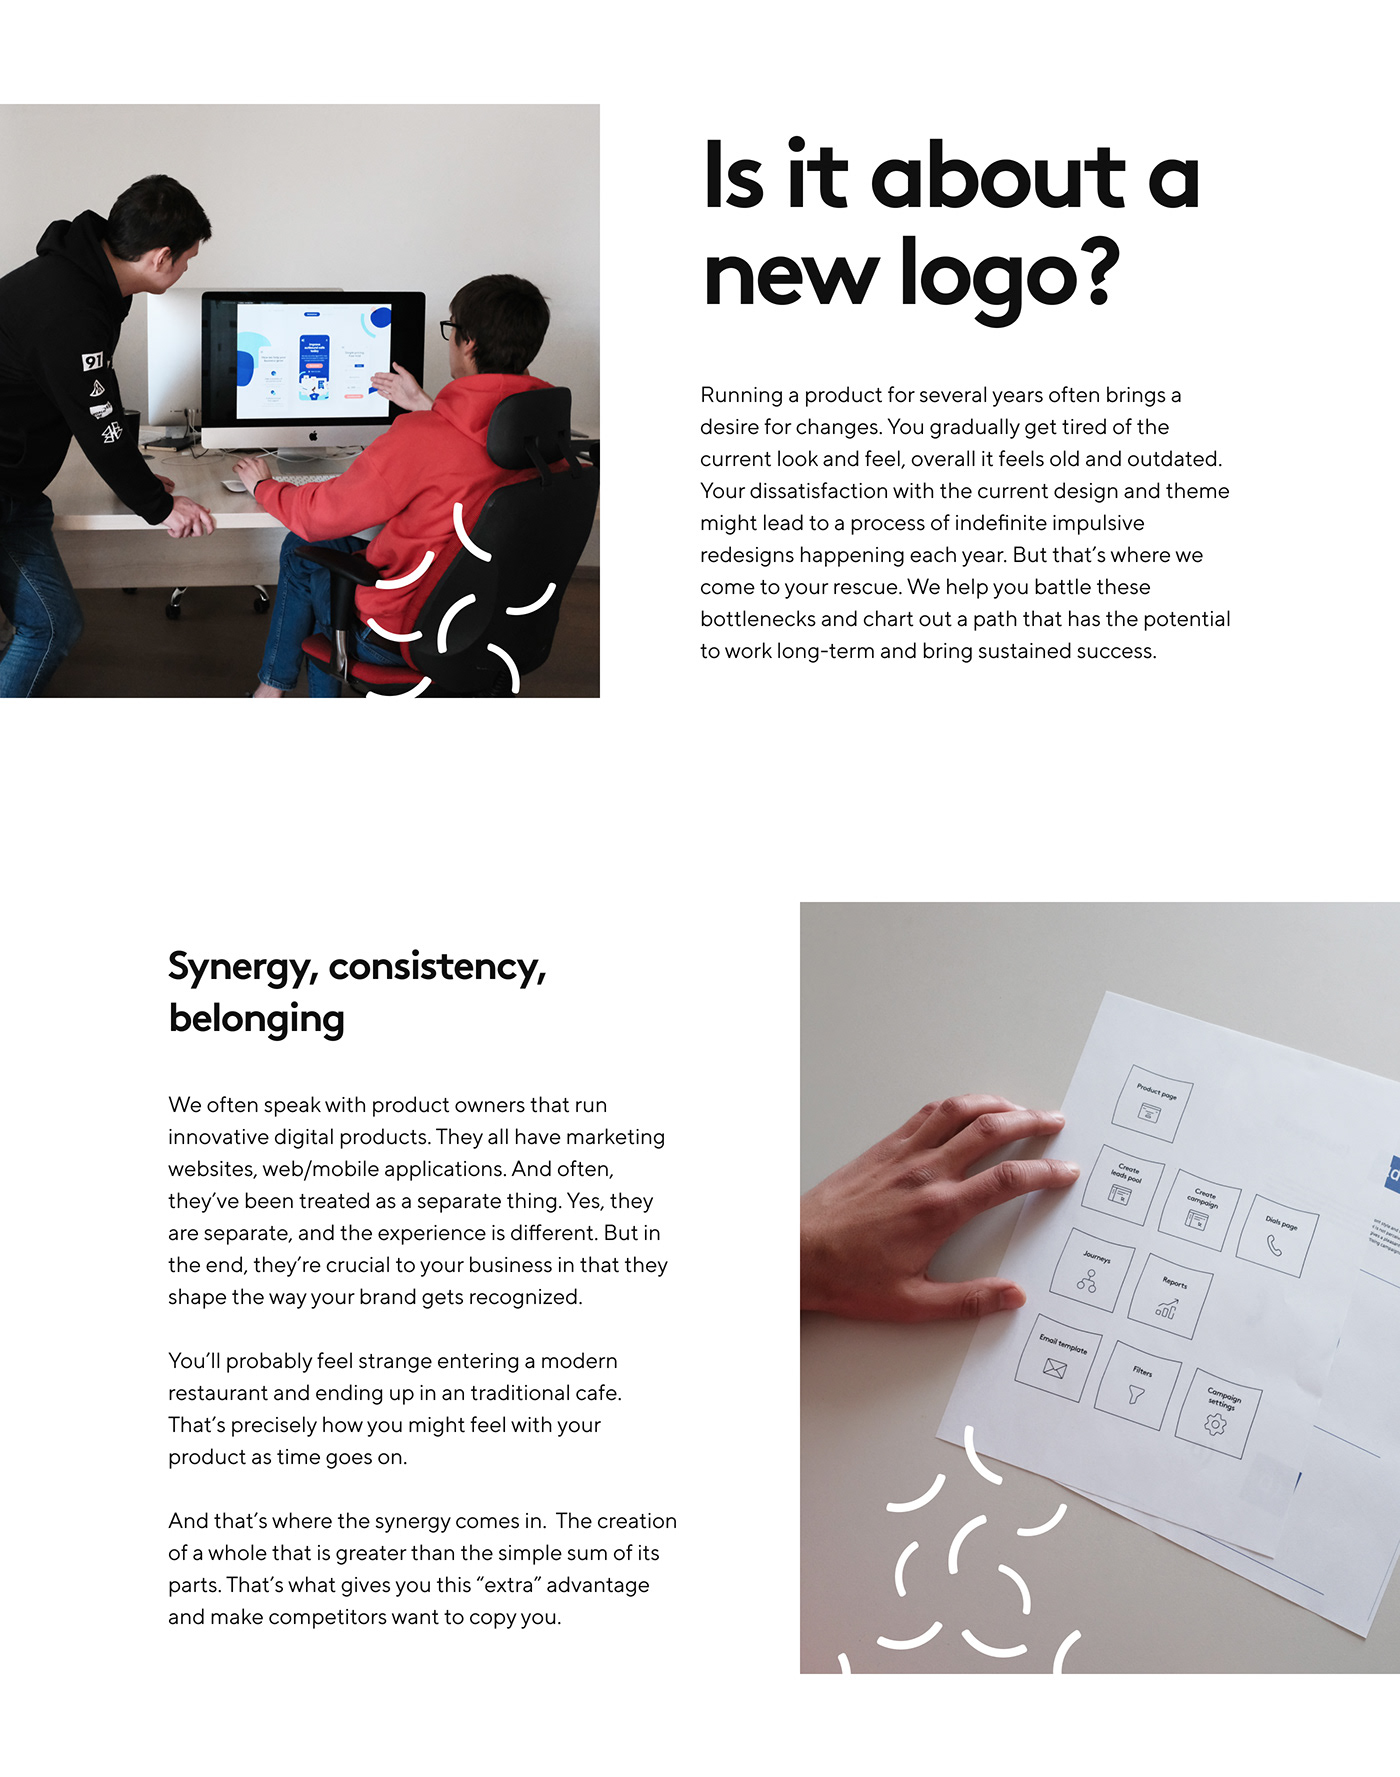 identity visual identity branding  Interaction design  product design  strategy Web Design  SAAS UX Stategy landing page